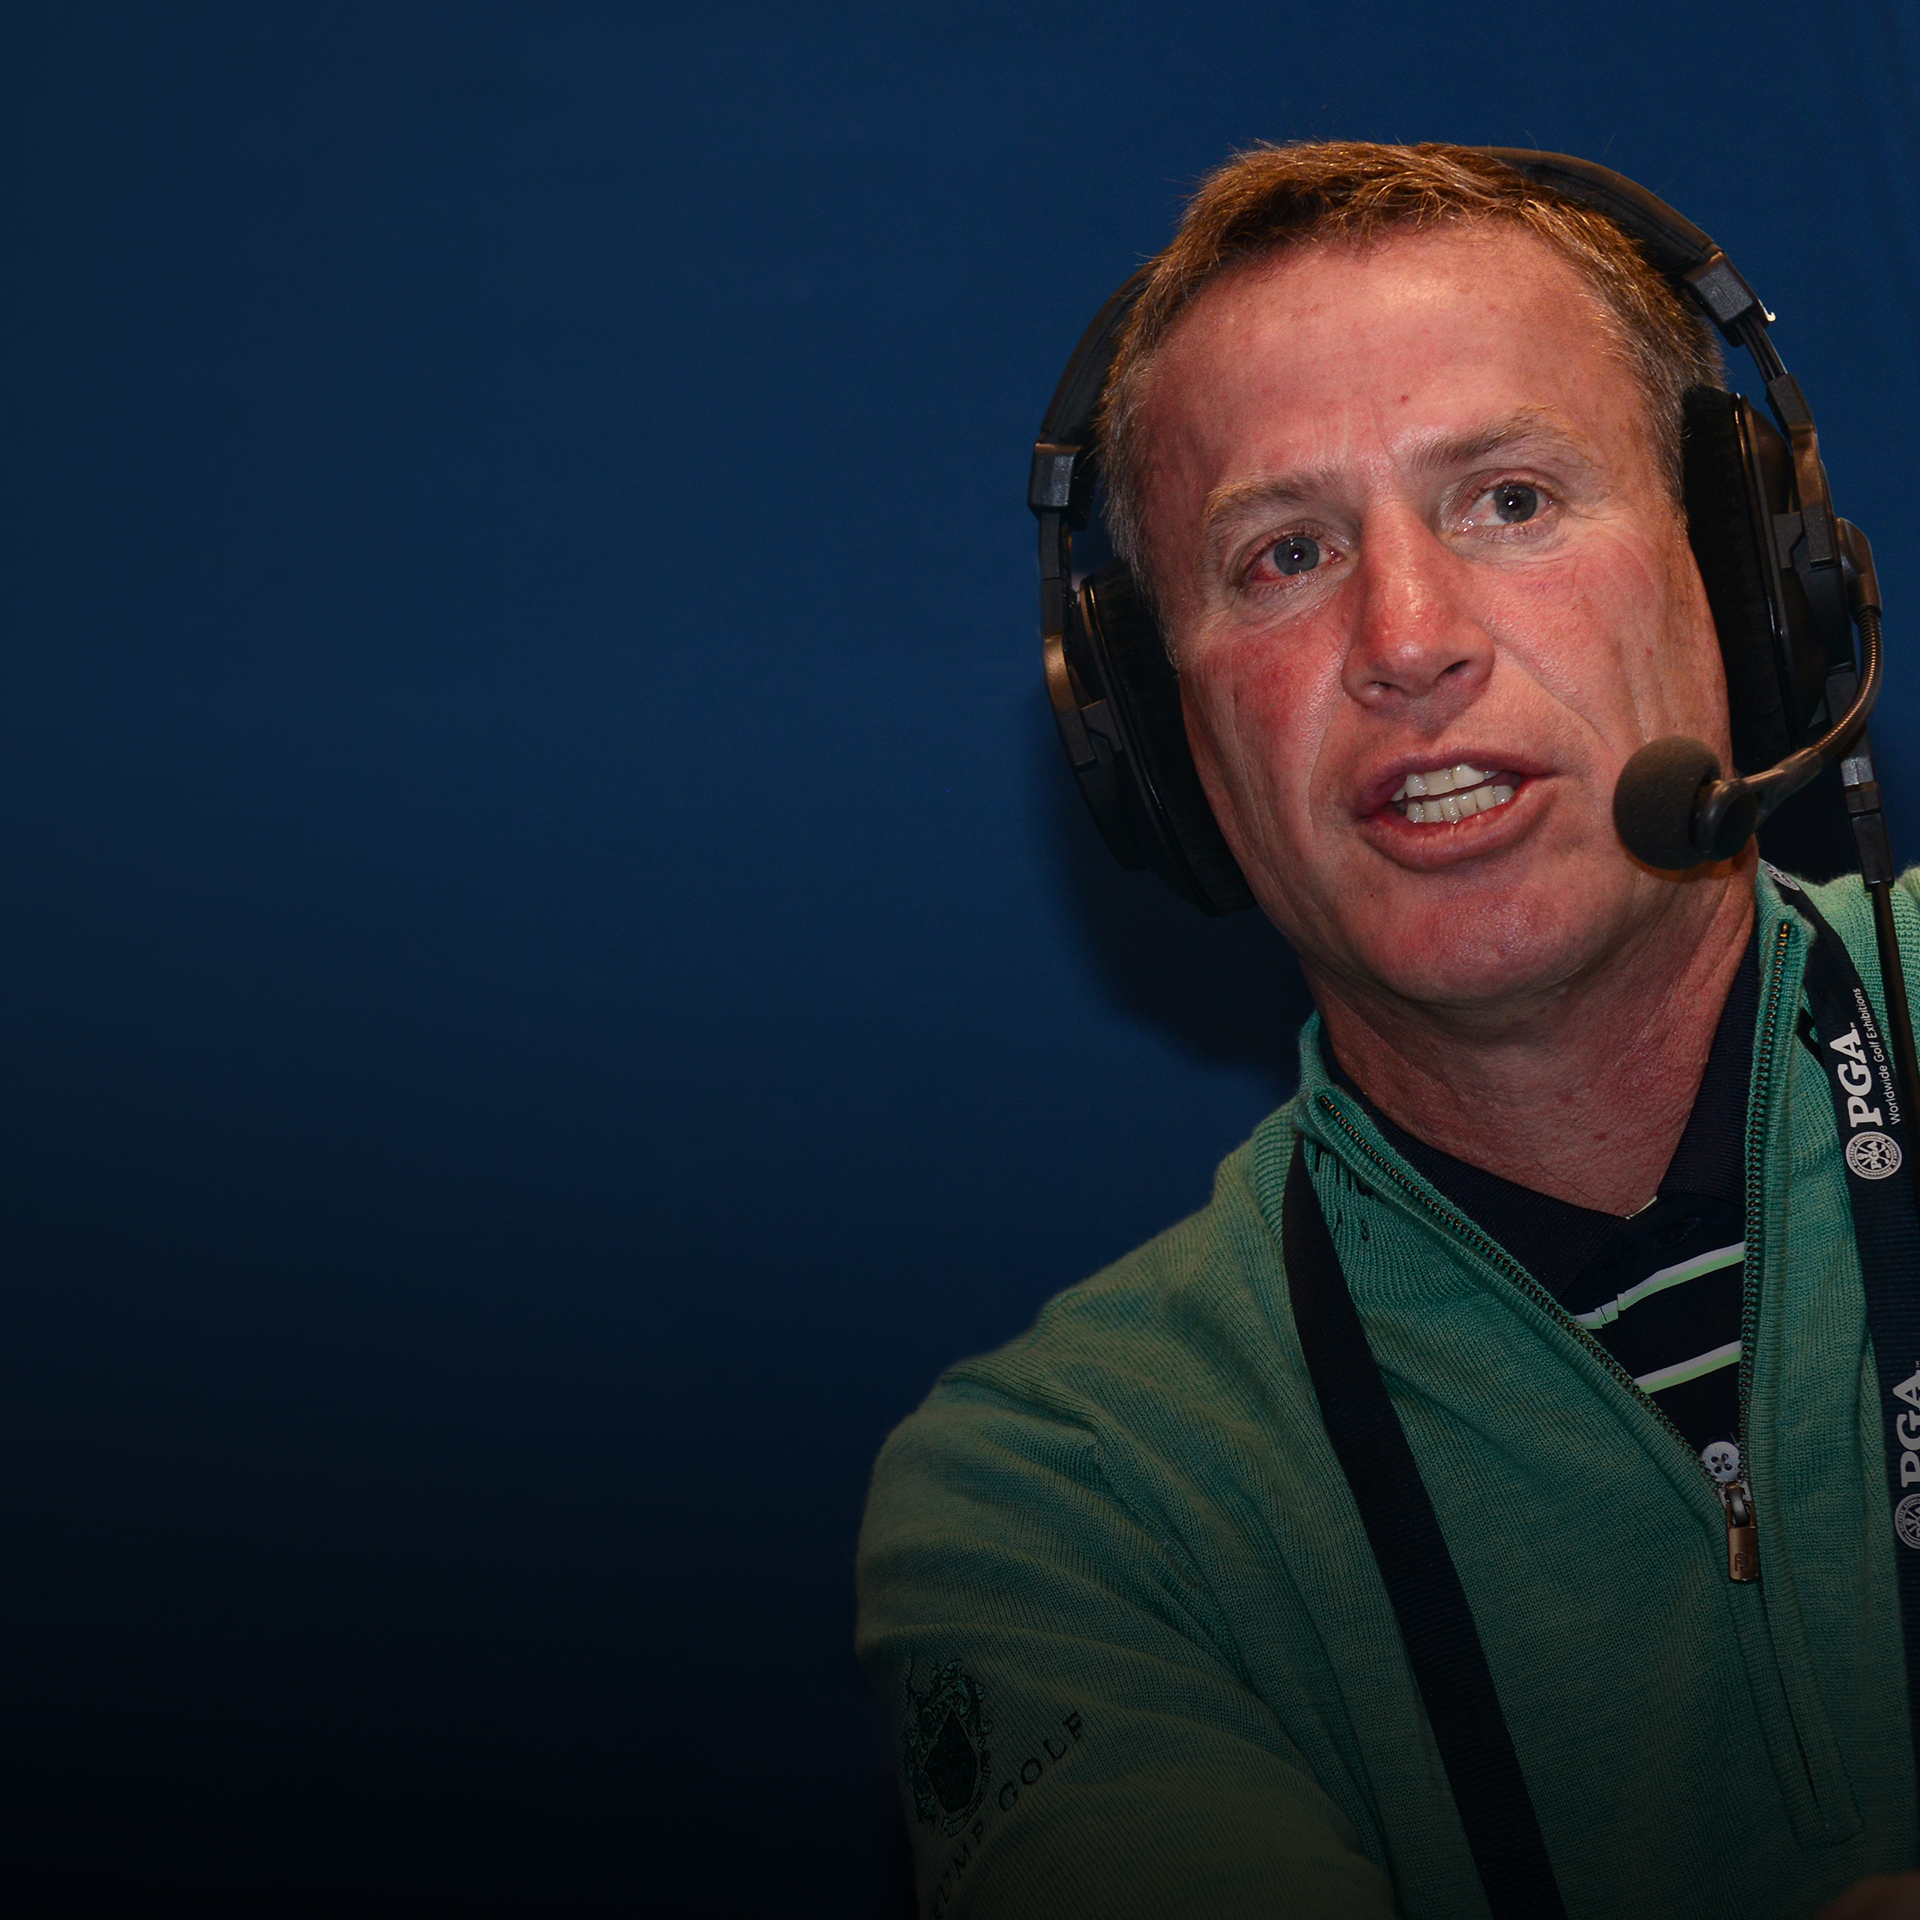 A New Breed of Golf with Michael Breed